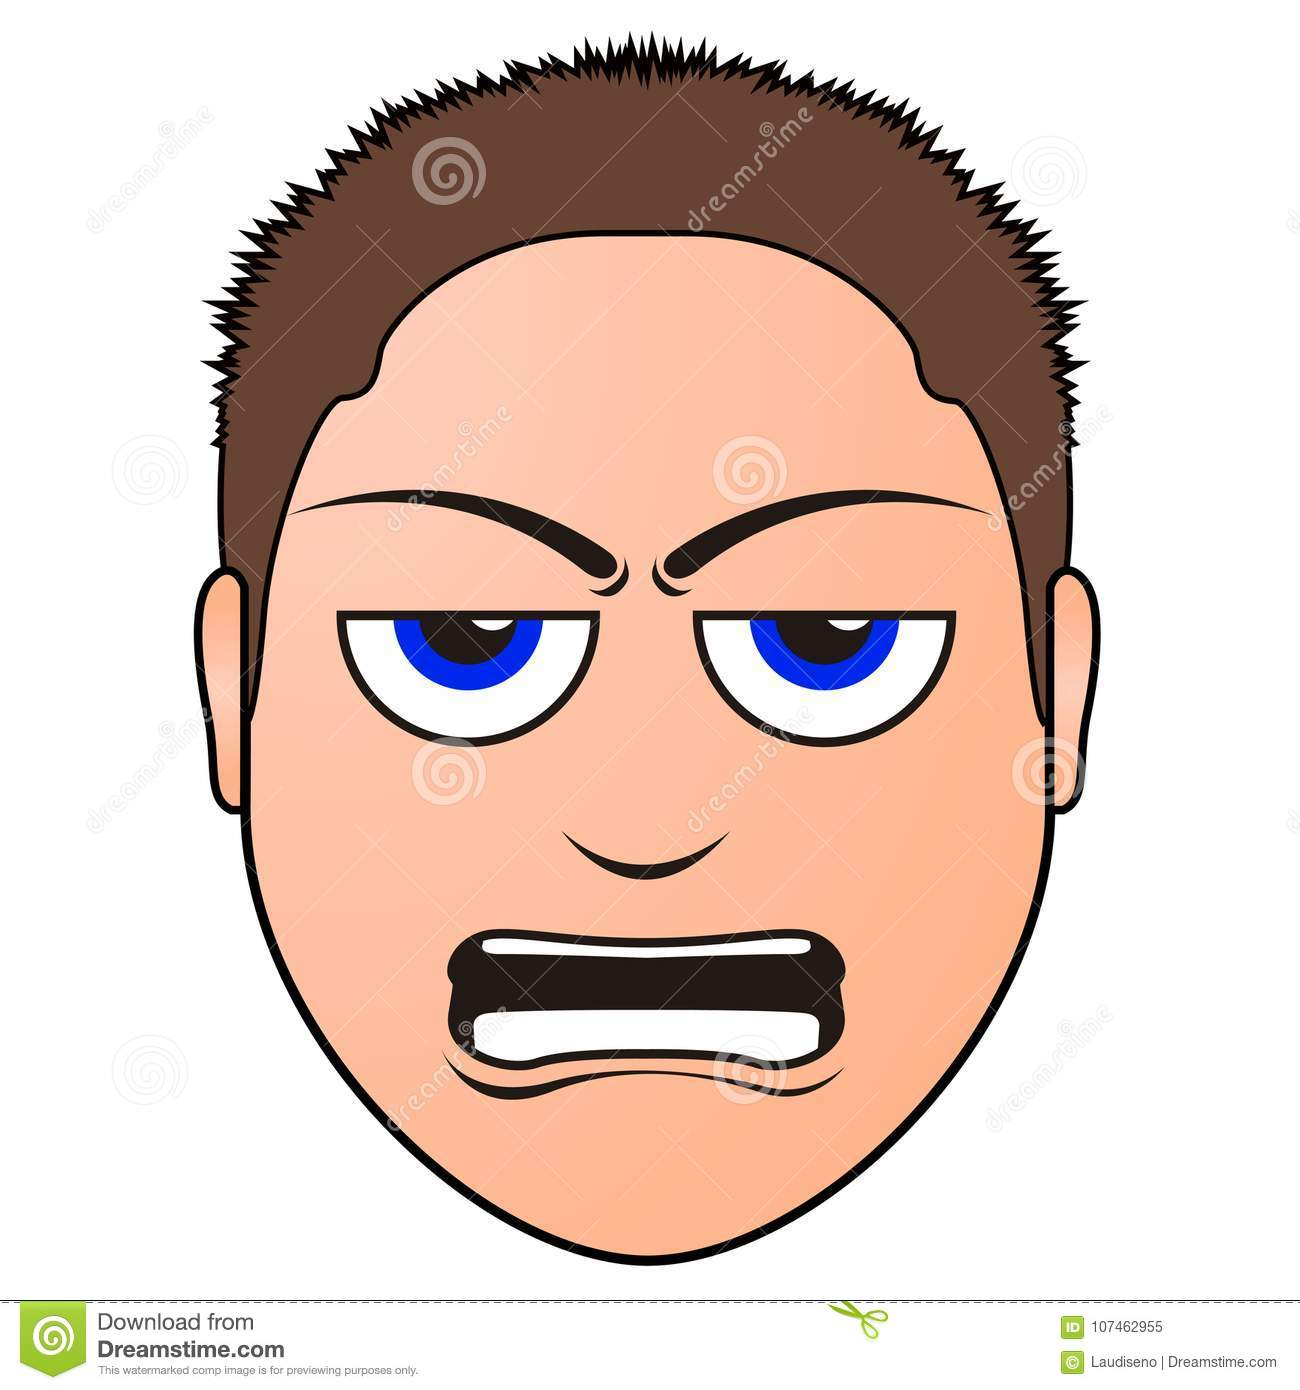 Angry man avatar stock vector. Illustration of clipart.